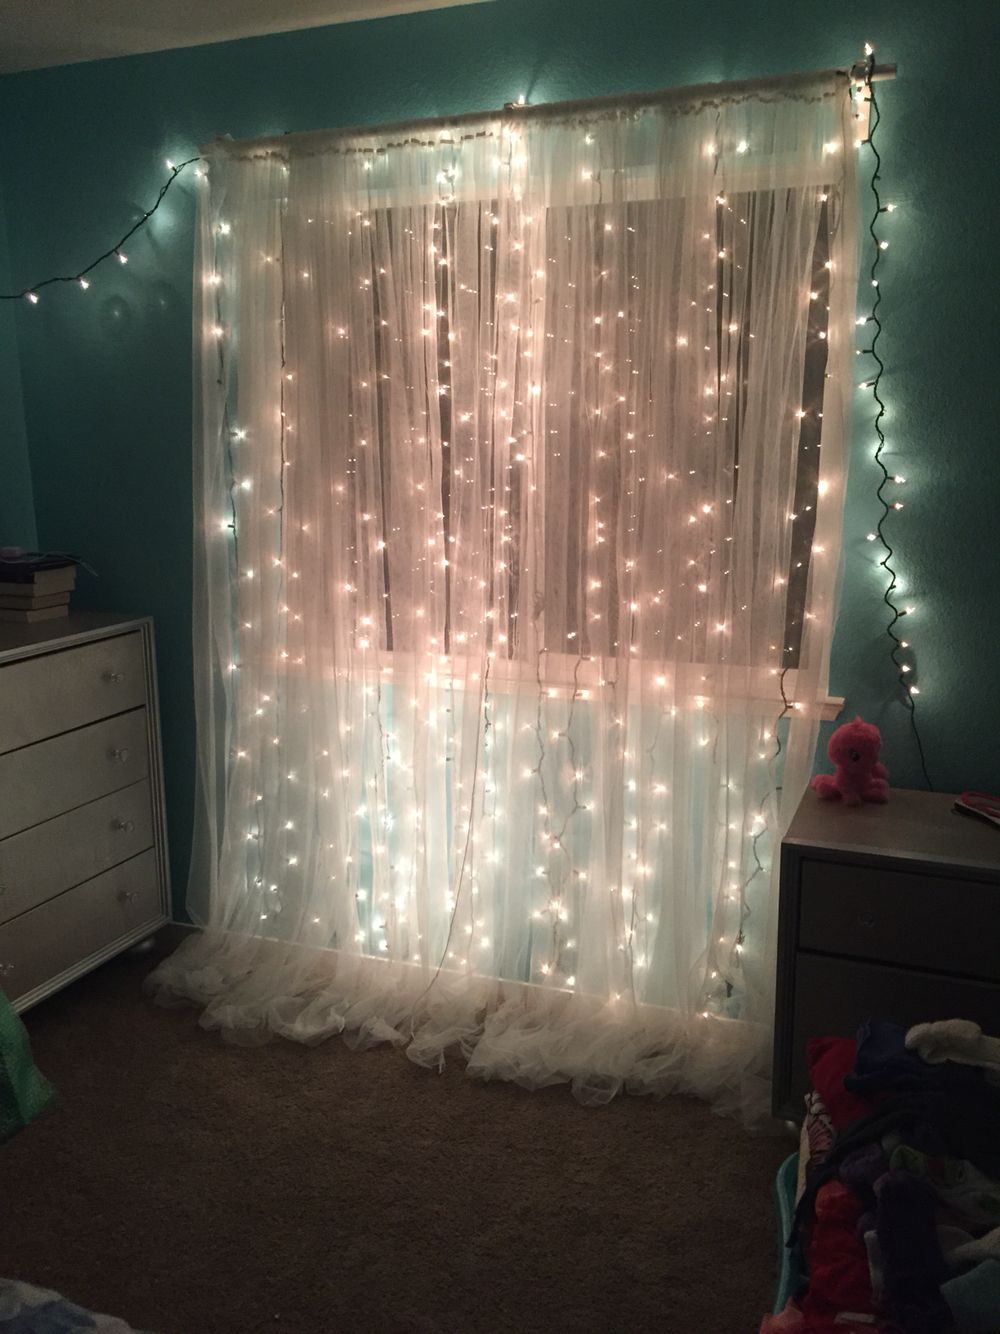 Pretty Curtains Bedroom Ideas For Couples Romantic Room Decor